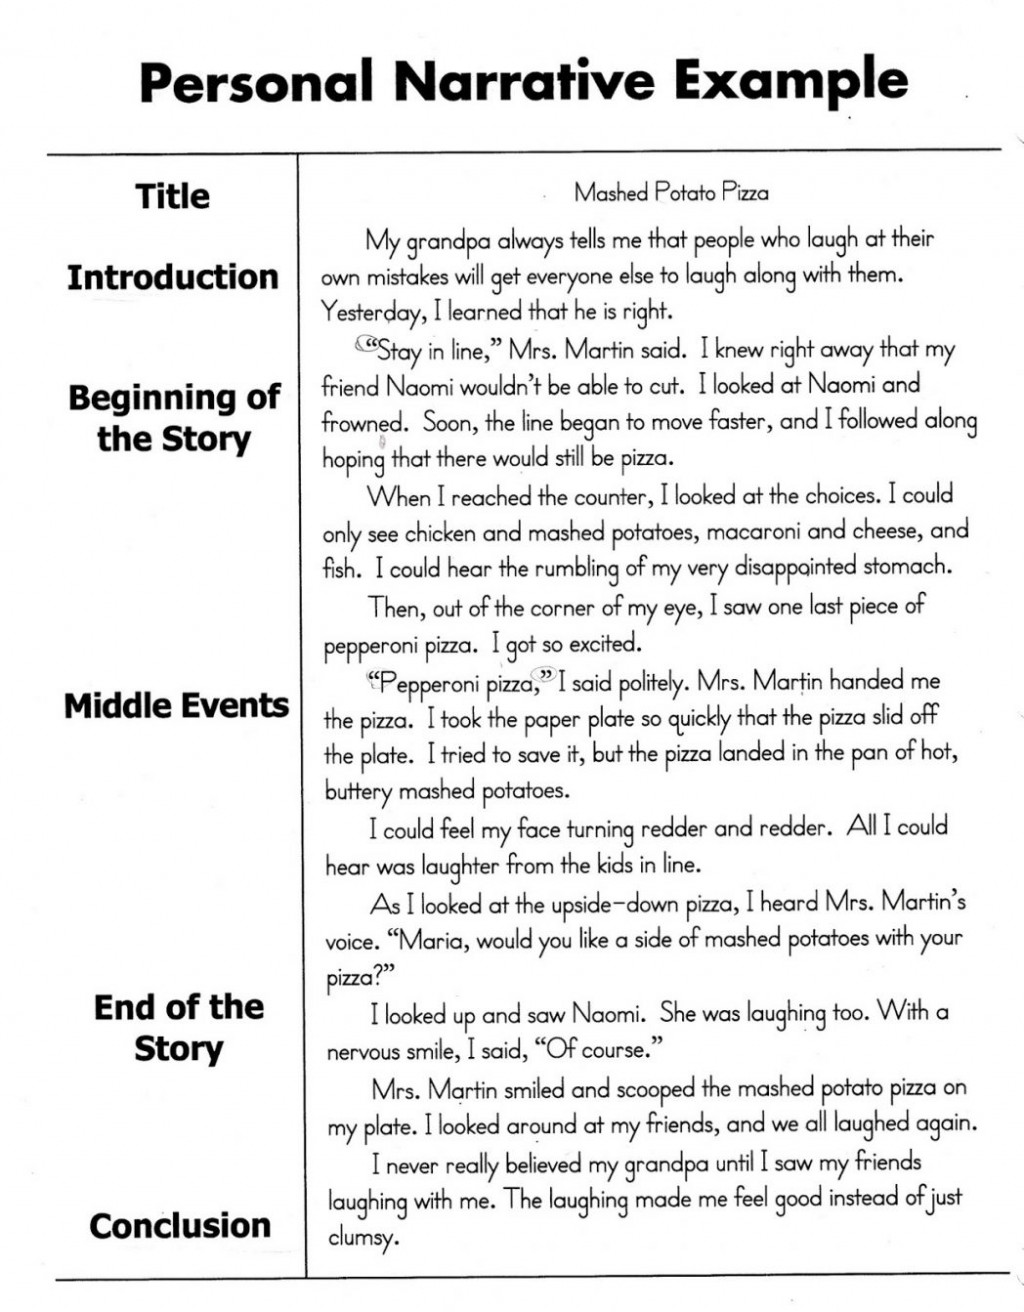 008 Good Narrative Essay Topics Macbeth Topic Sample High School For College Students Personal Prompts 1048x1343 Stirring Descriptive Grade 8 Large